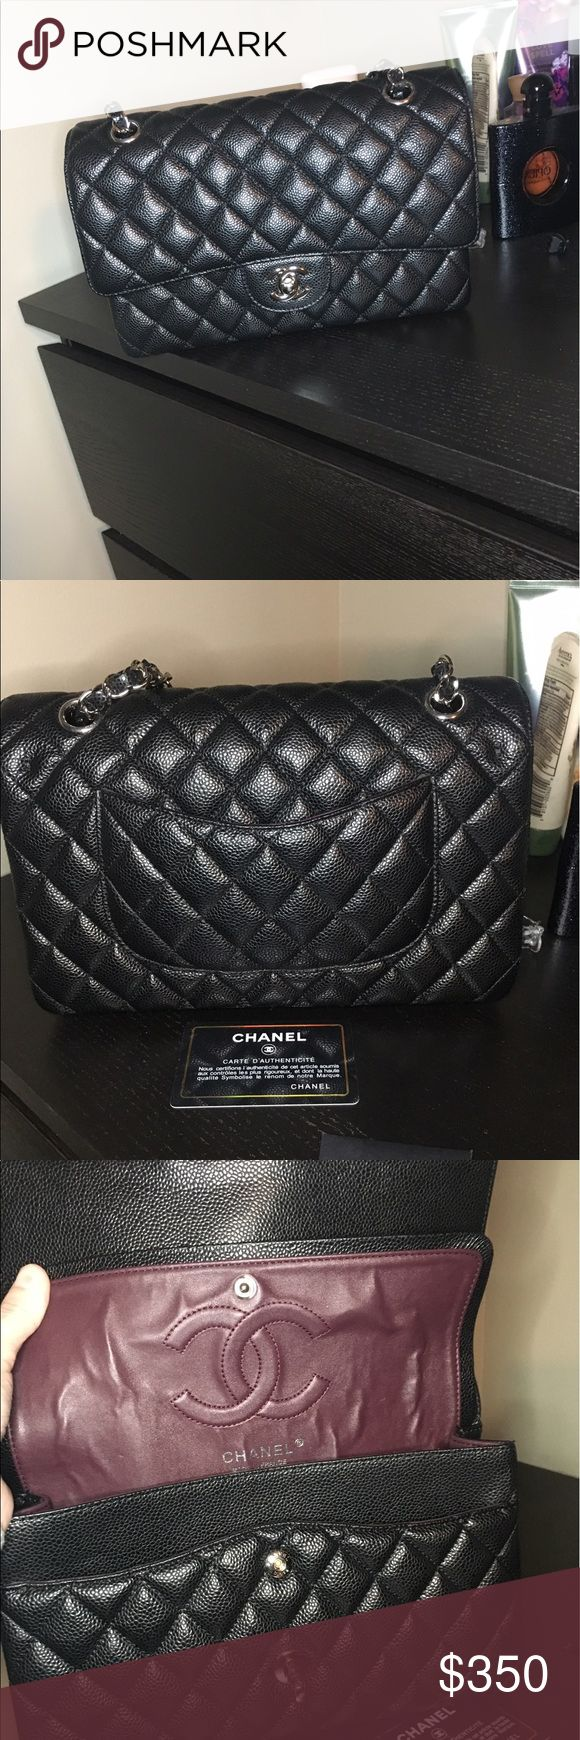 Chanel double flap Top high quality Chanel double flap!:) N O T  A U T H E N T I C. Great condition Bags Shoulder Bags